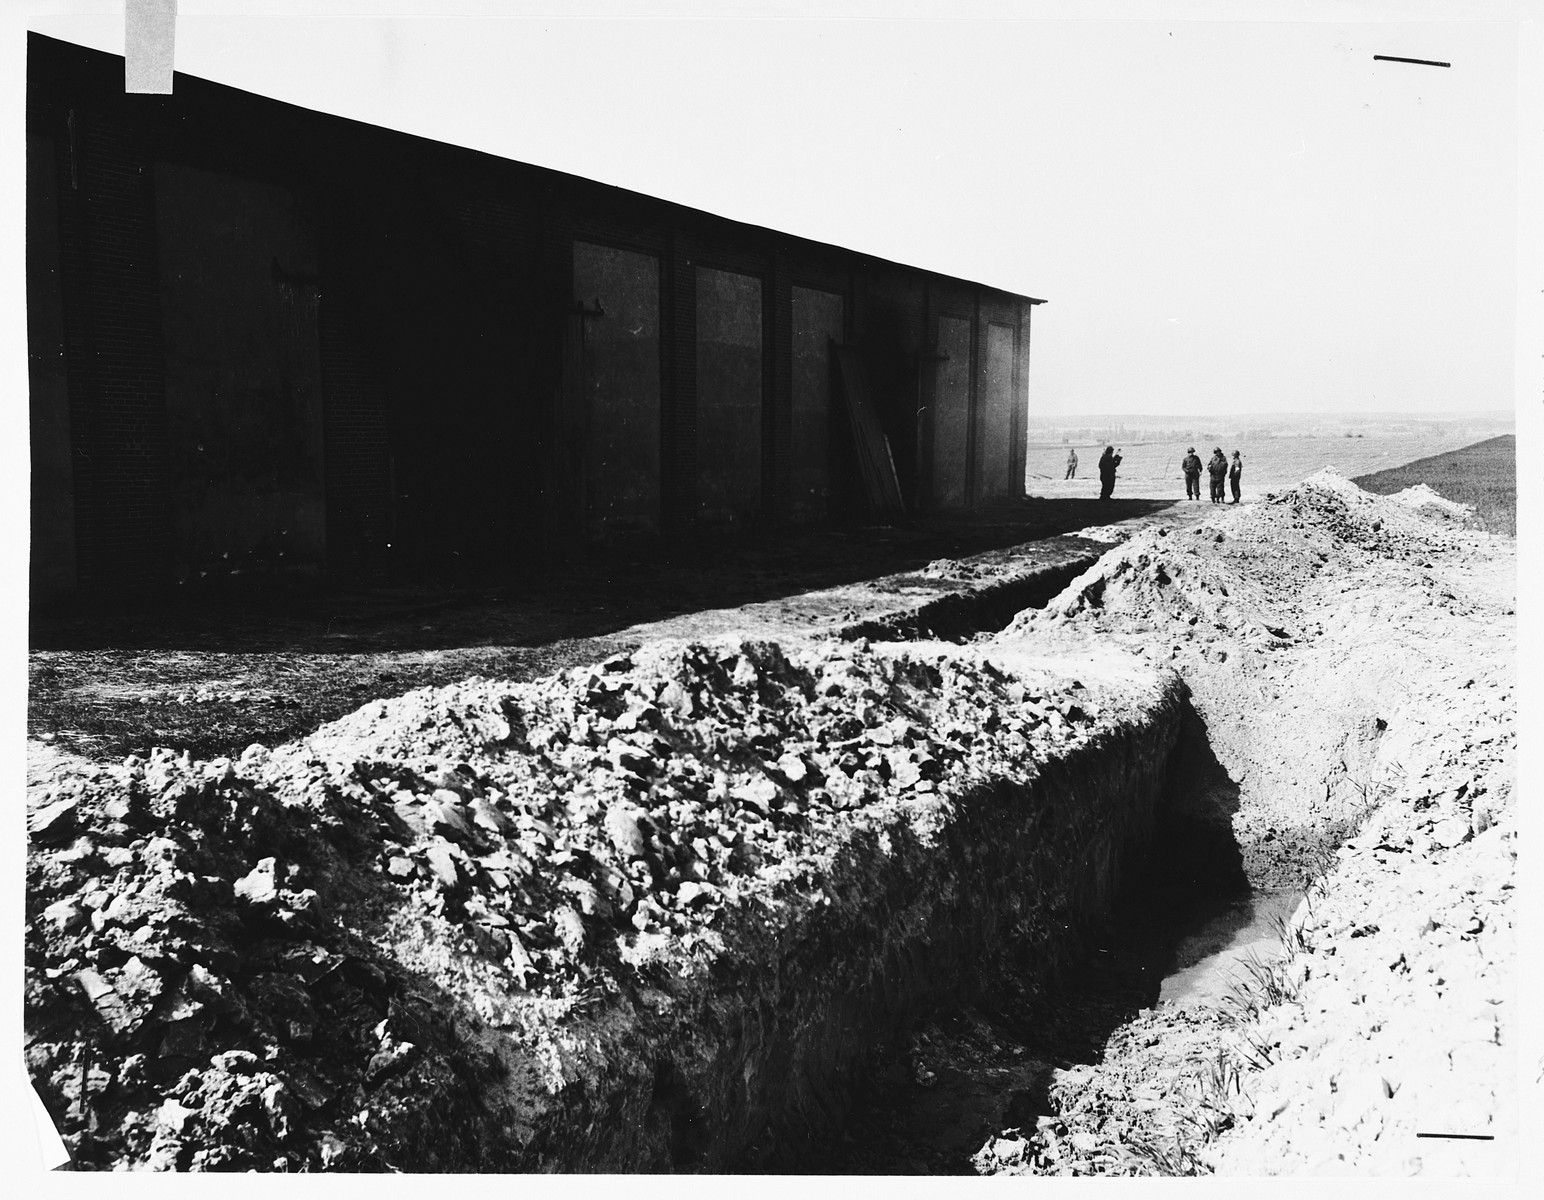 View of the north side of the barn outside of Gardelegen.  In the foreground are two mass graves in which prisoners who were burned alive were buried by the SS.